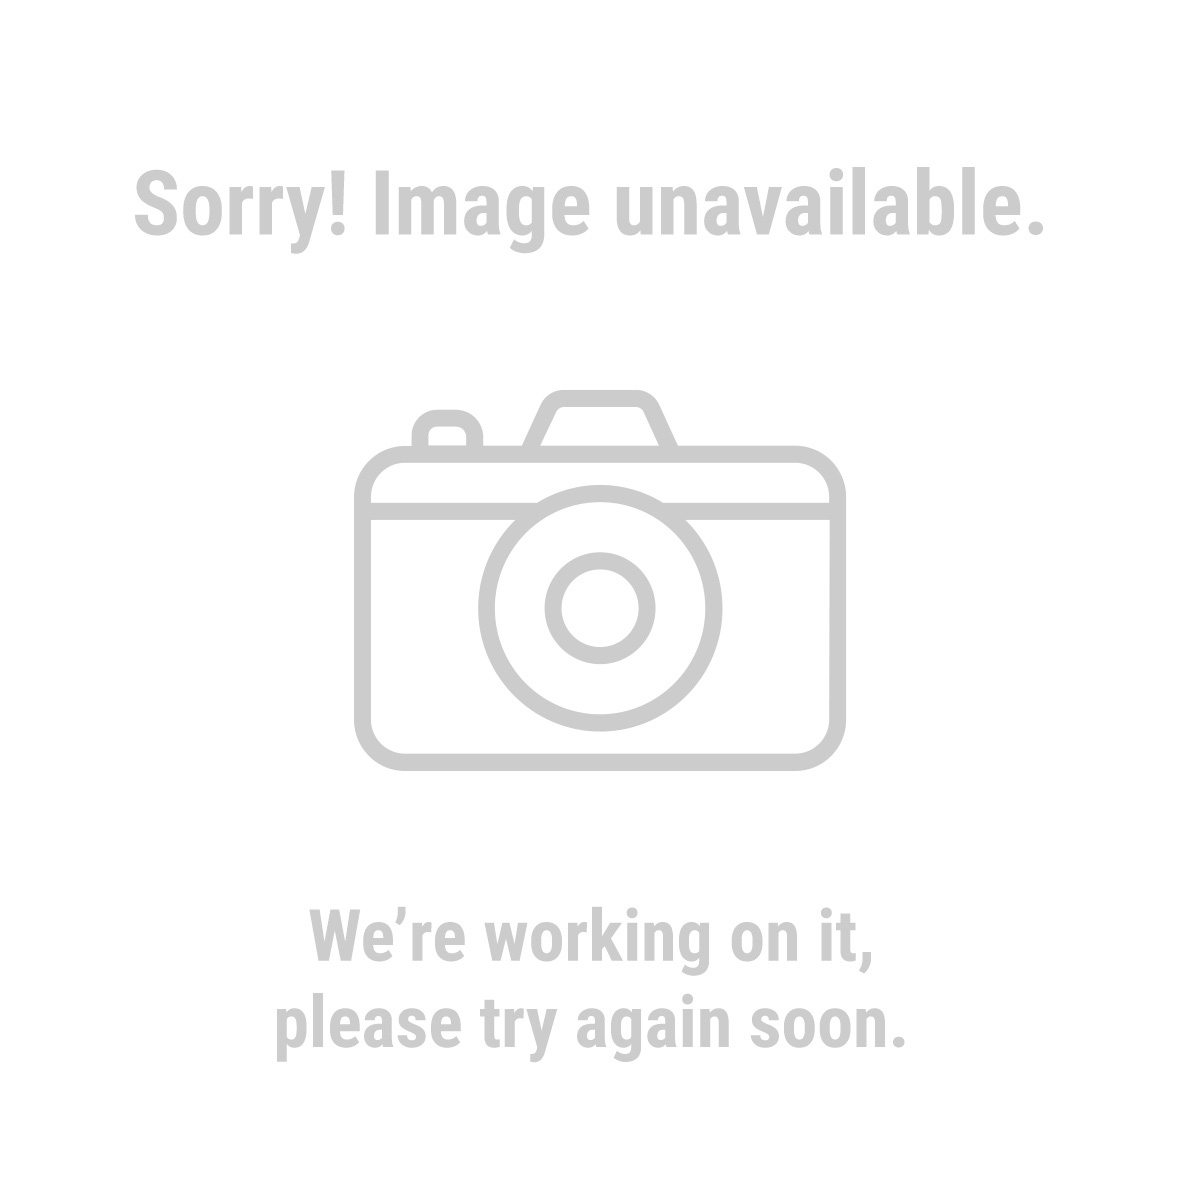 "Moly Carb 38535 7-1/4"", 40 Tooth Molybdenum Tipped Circular Saw Blade"